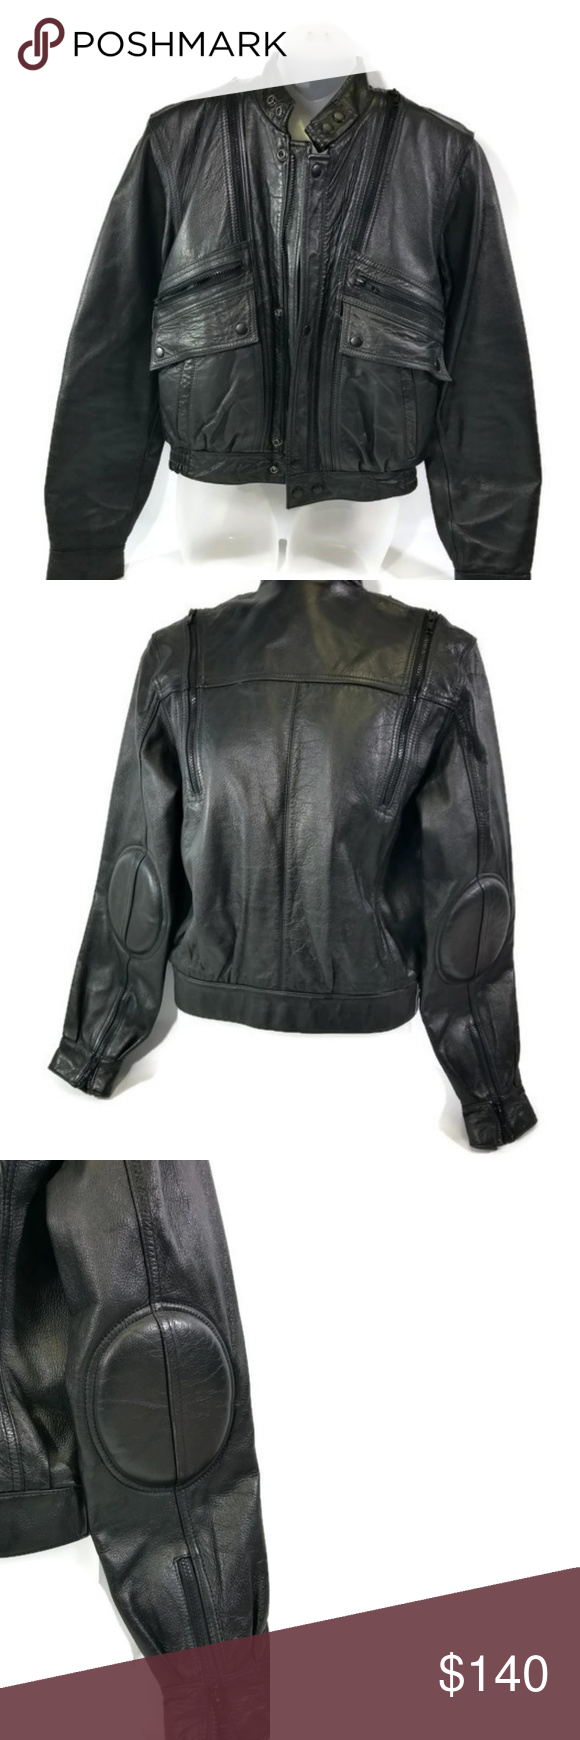 Vtg Wilsons Leather Black Biker Motorcycle Jacket